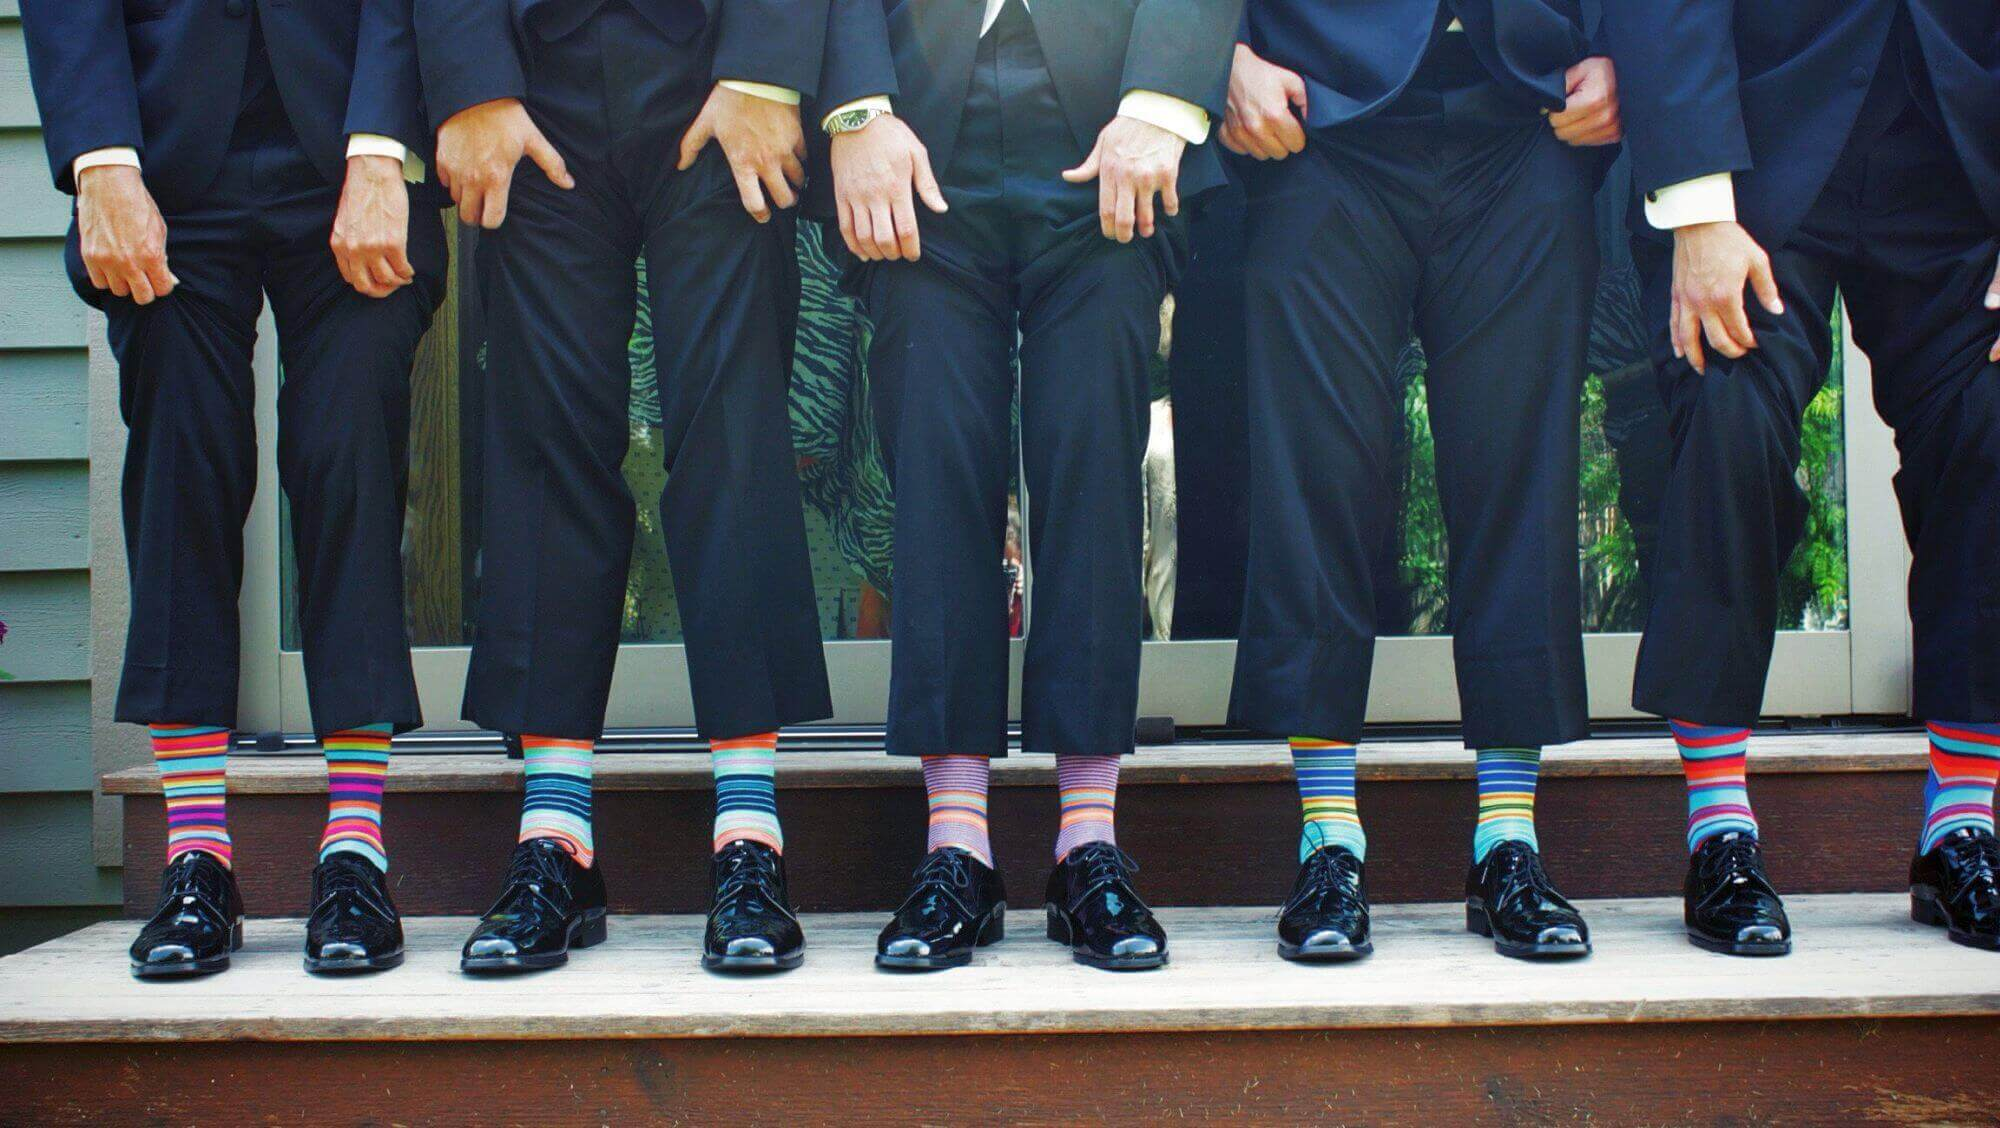 men lifting their pants showing colorful socks